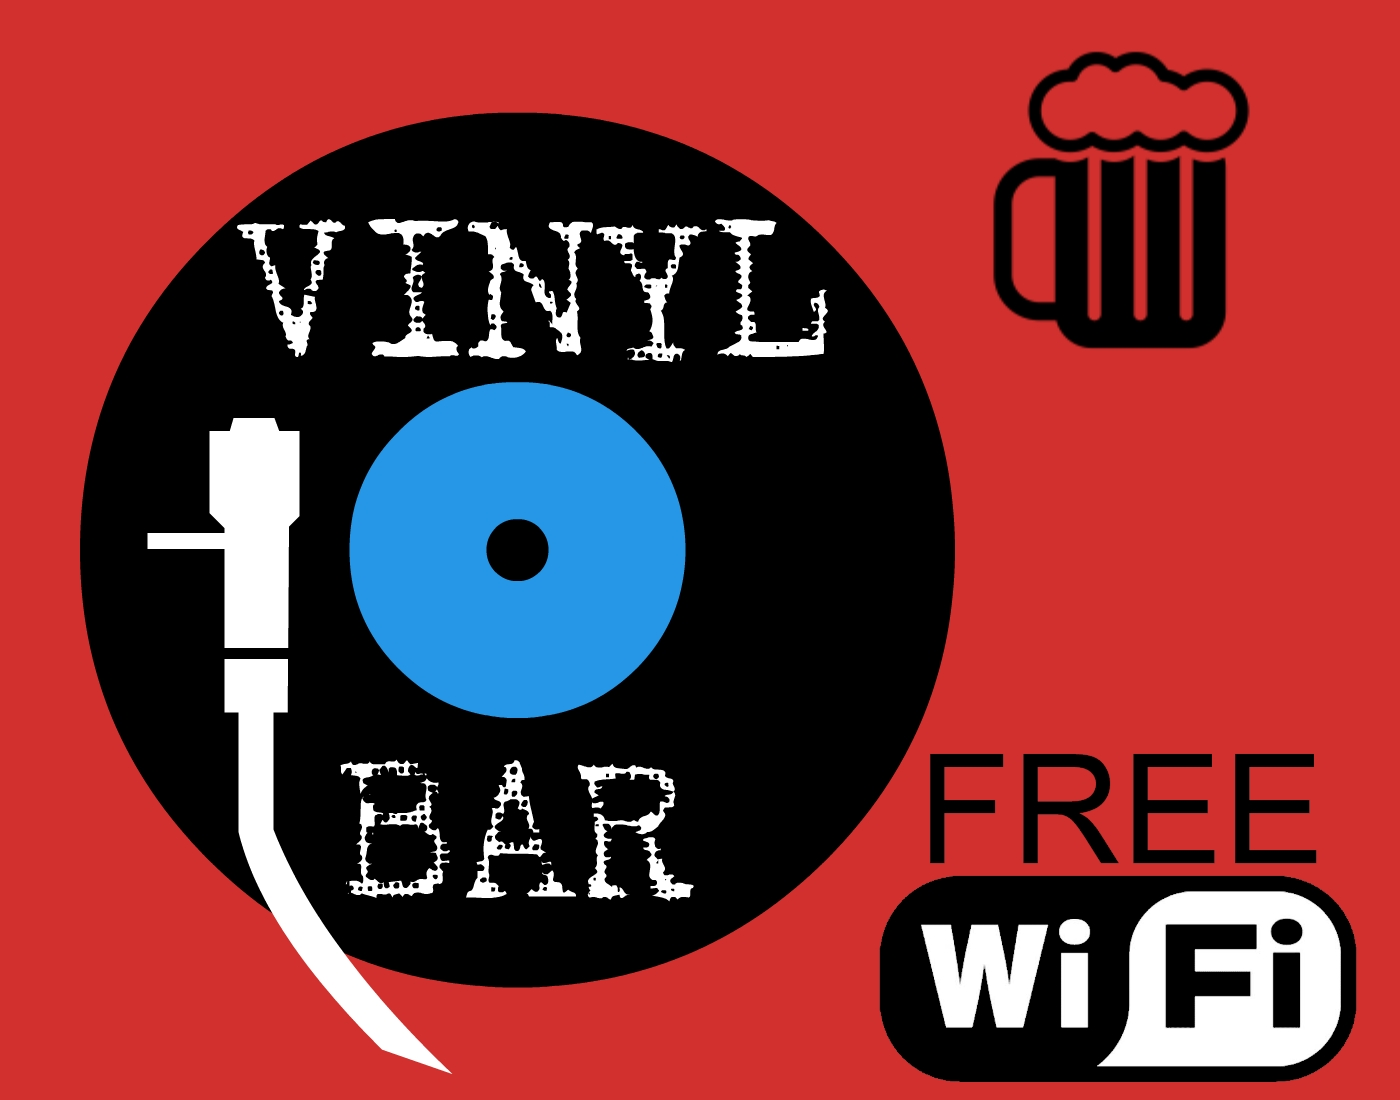 Samui VINYL BAR